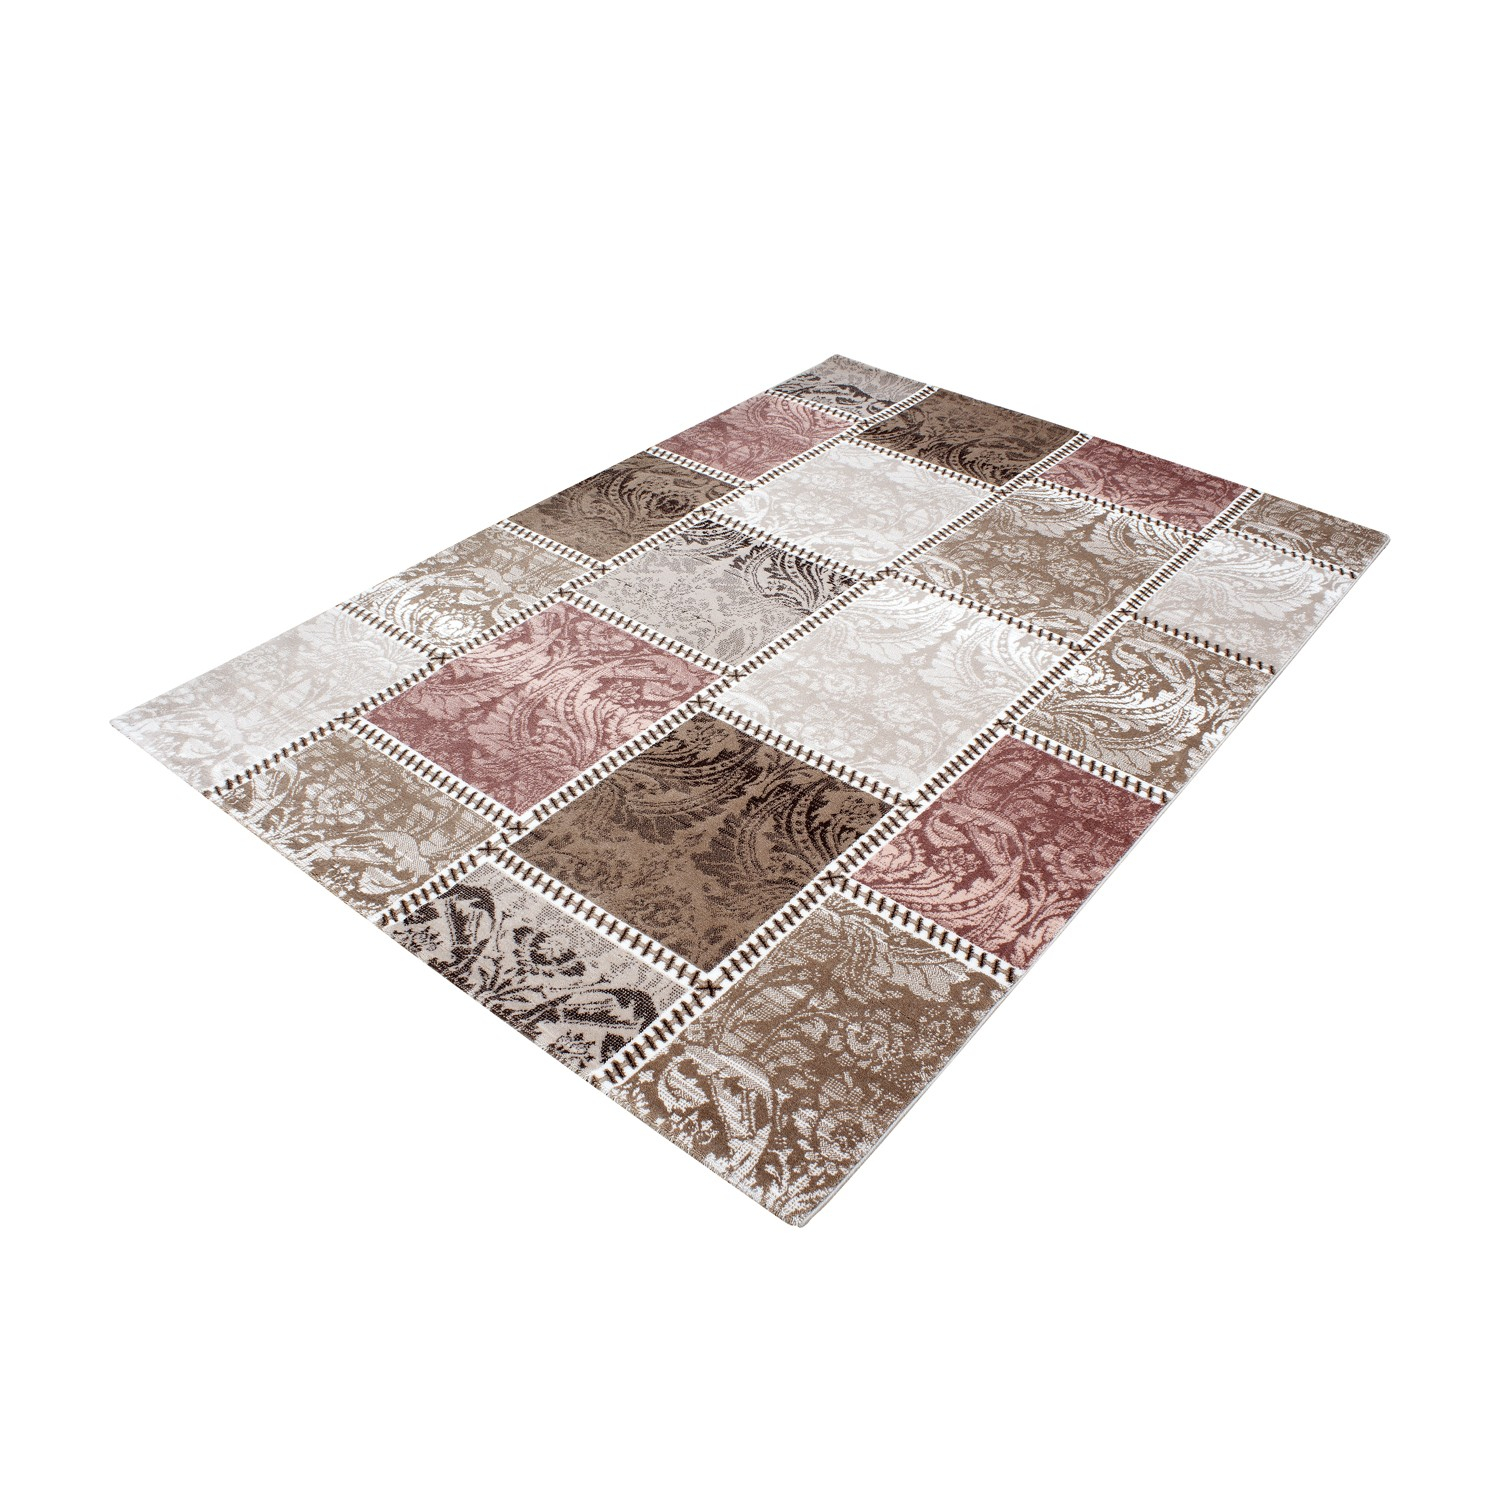 Carrelage design tapis oriental pas cher moderne for Tapis anti salissure pas cher